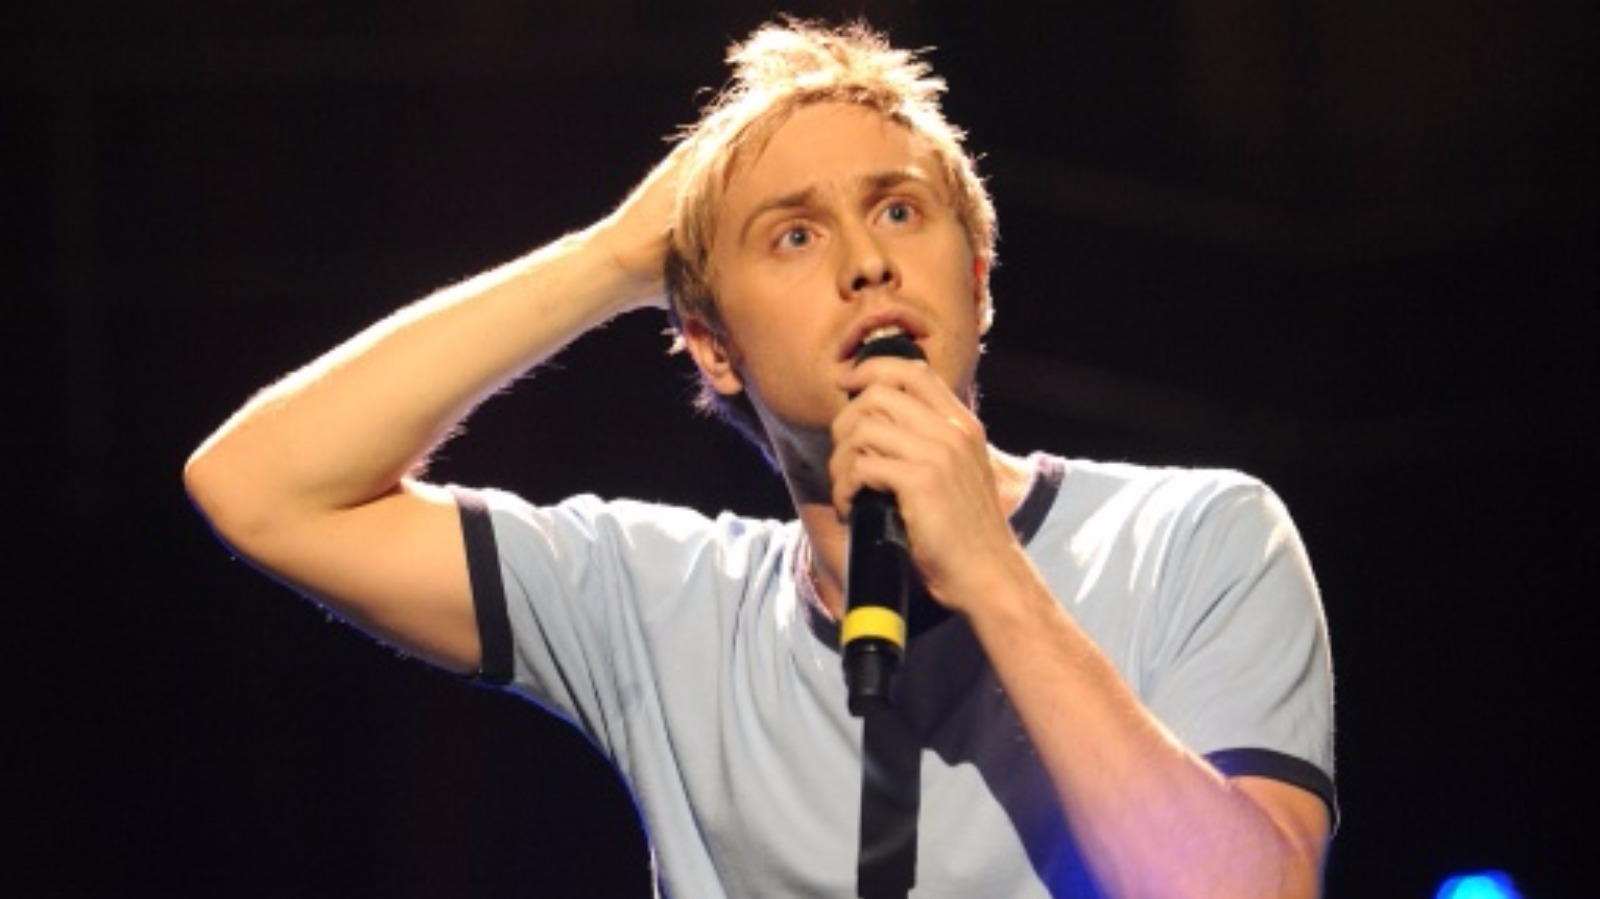 Russell Howard & Bill Bailey to perform at Leeds Fest ...